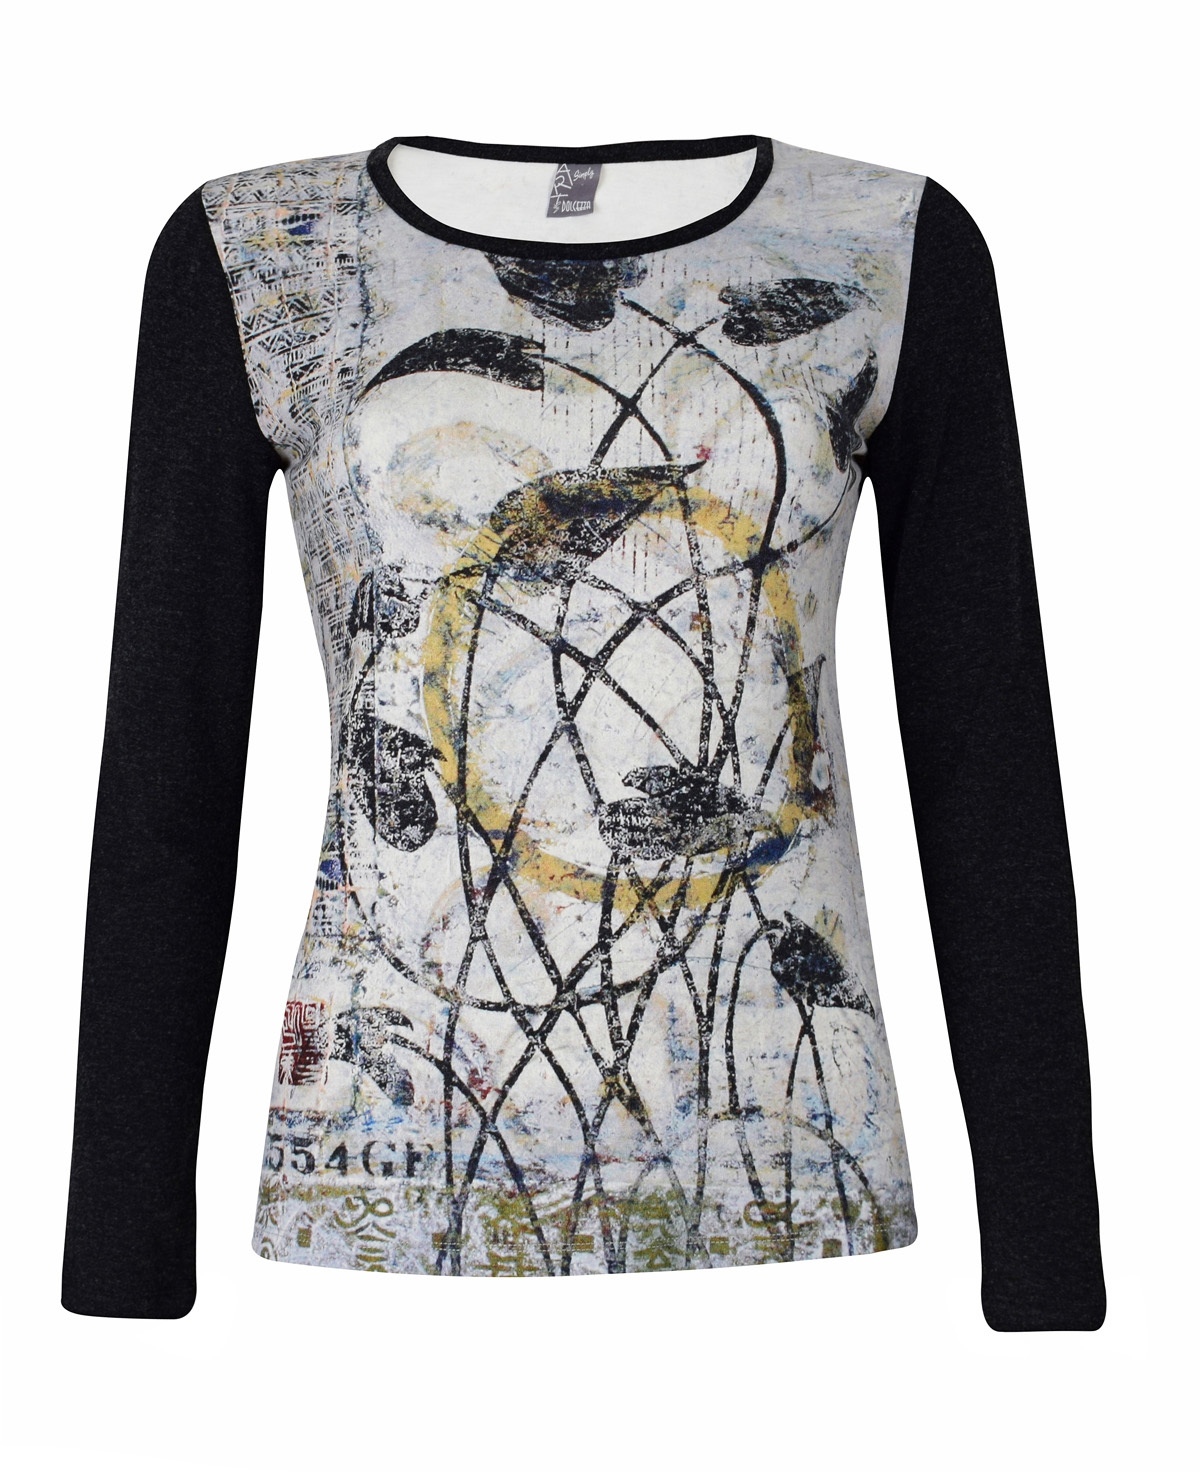 Simply Art Dolcezza: Random Acts Of Petal Beauty Abstract Art Tunic (2 Left!) Dolcezza_SimplyArt_59610